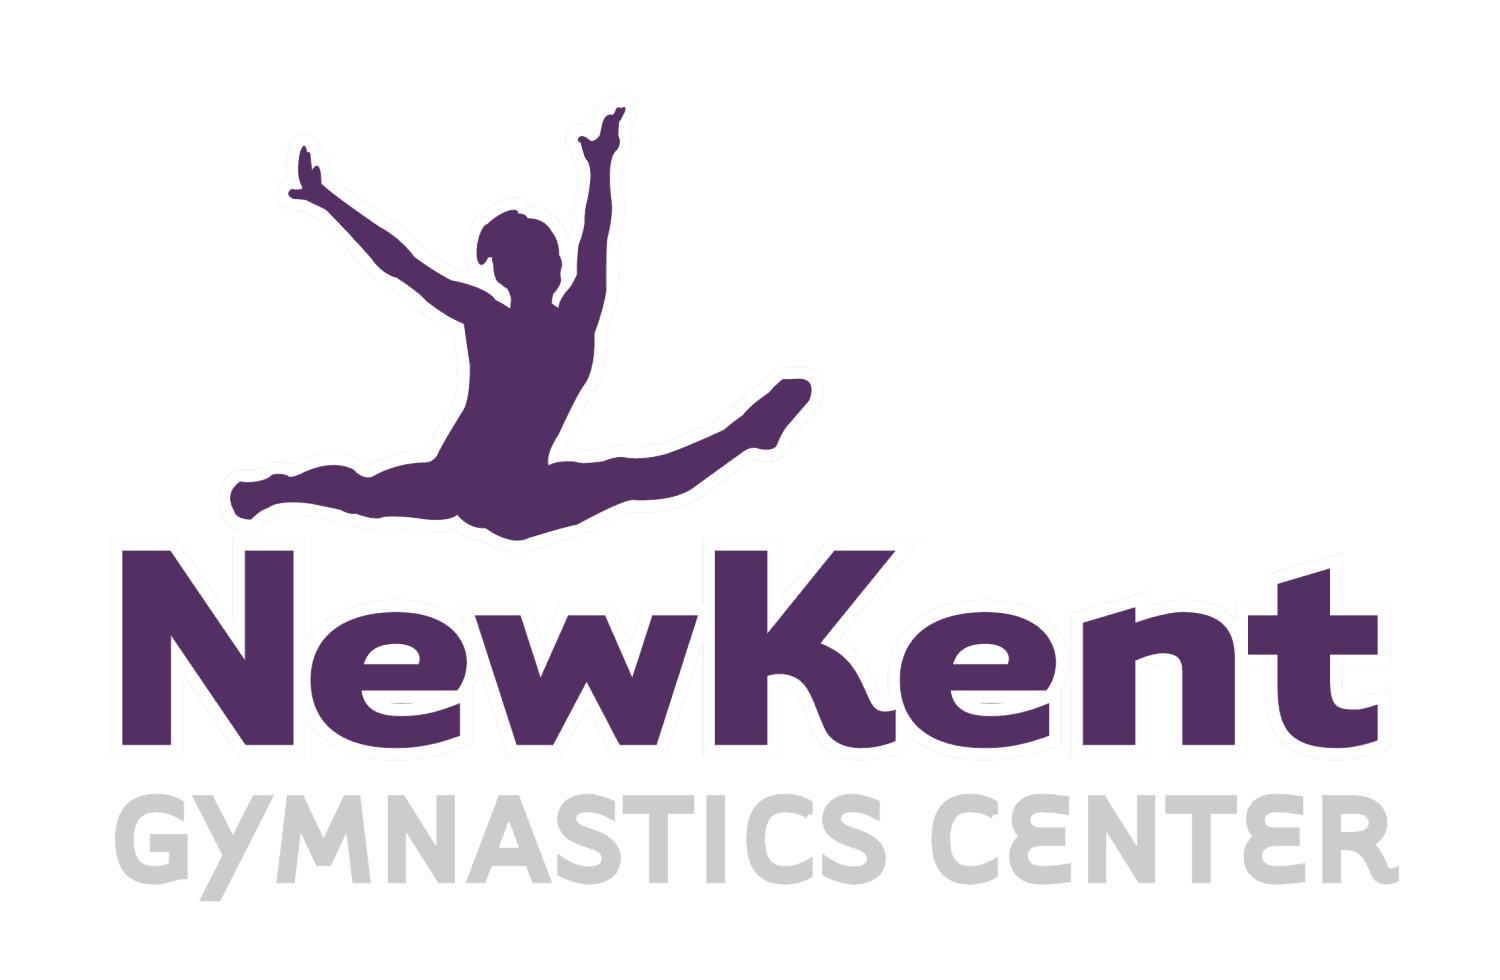 Our coaches new kent gymnastics center nathan lilley 1betcityfo Choice Image